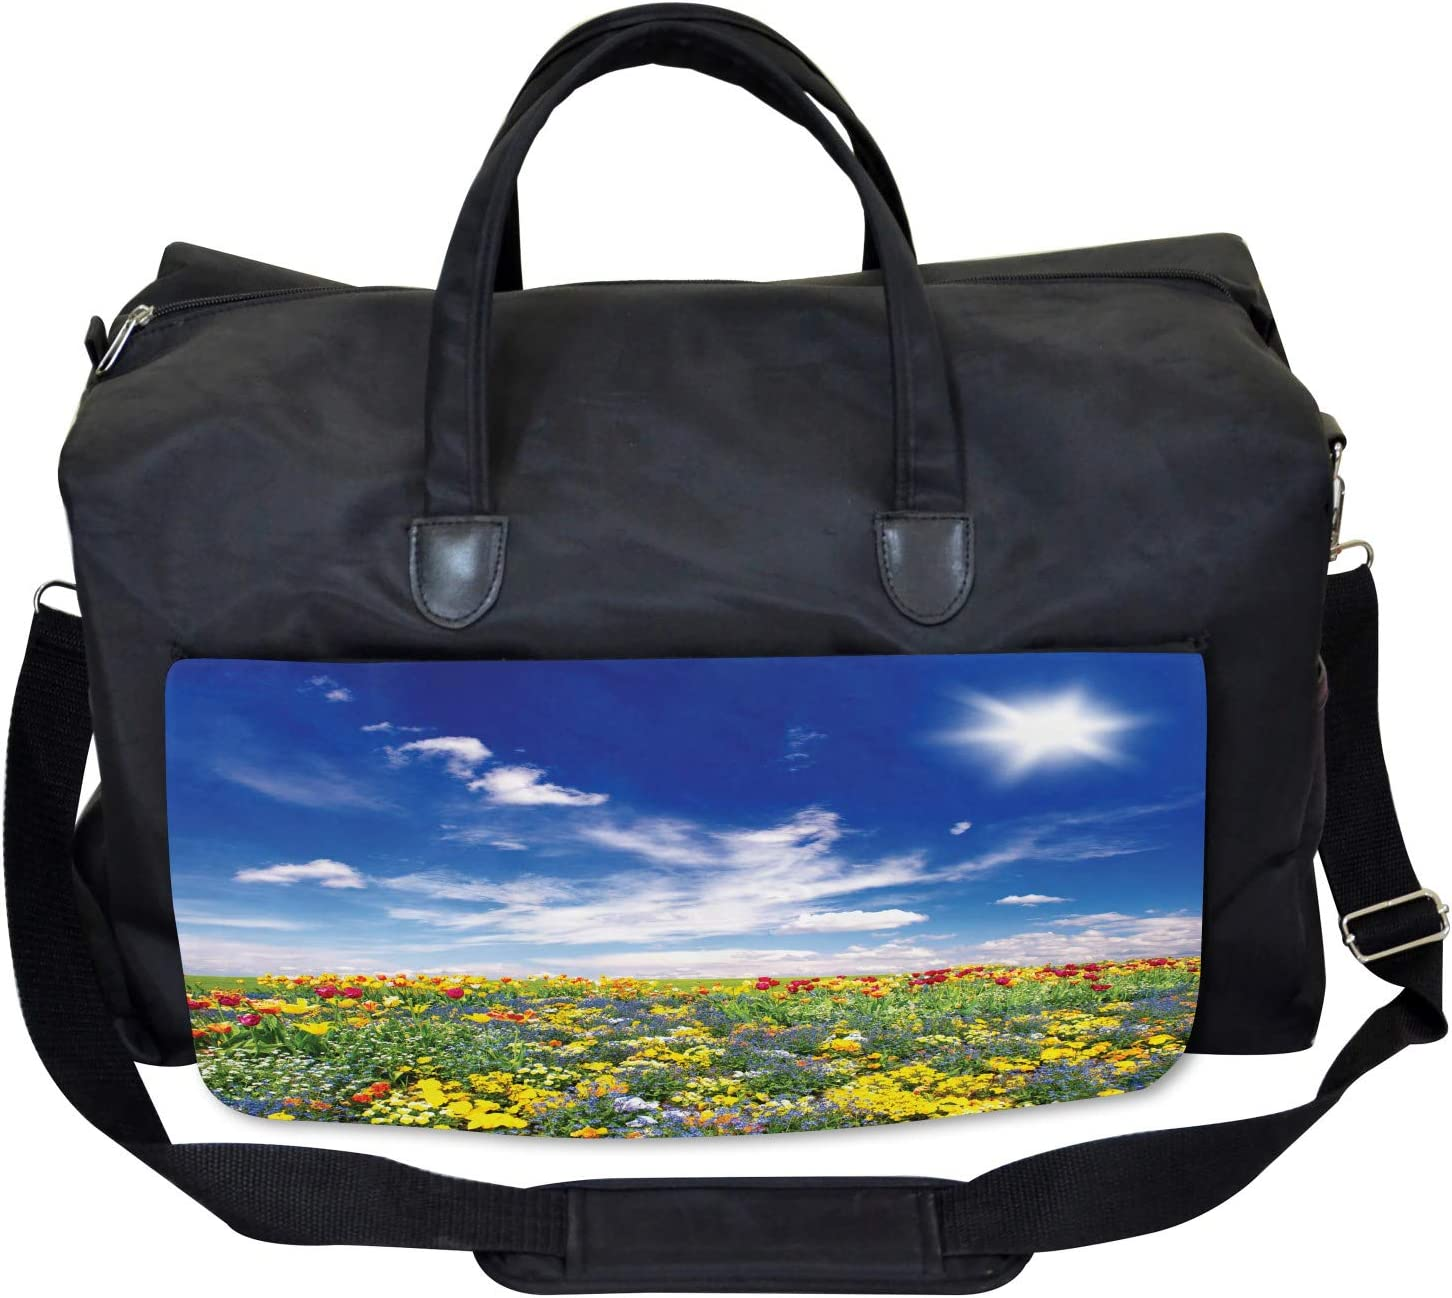 Large Weekender Carry-on Flowers Cloudy Sky Ambesonne Colorful Gym Bag